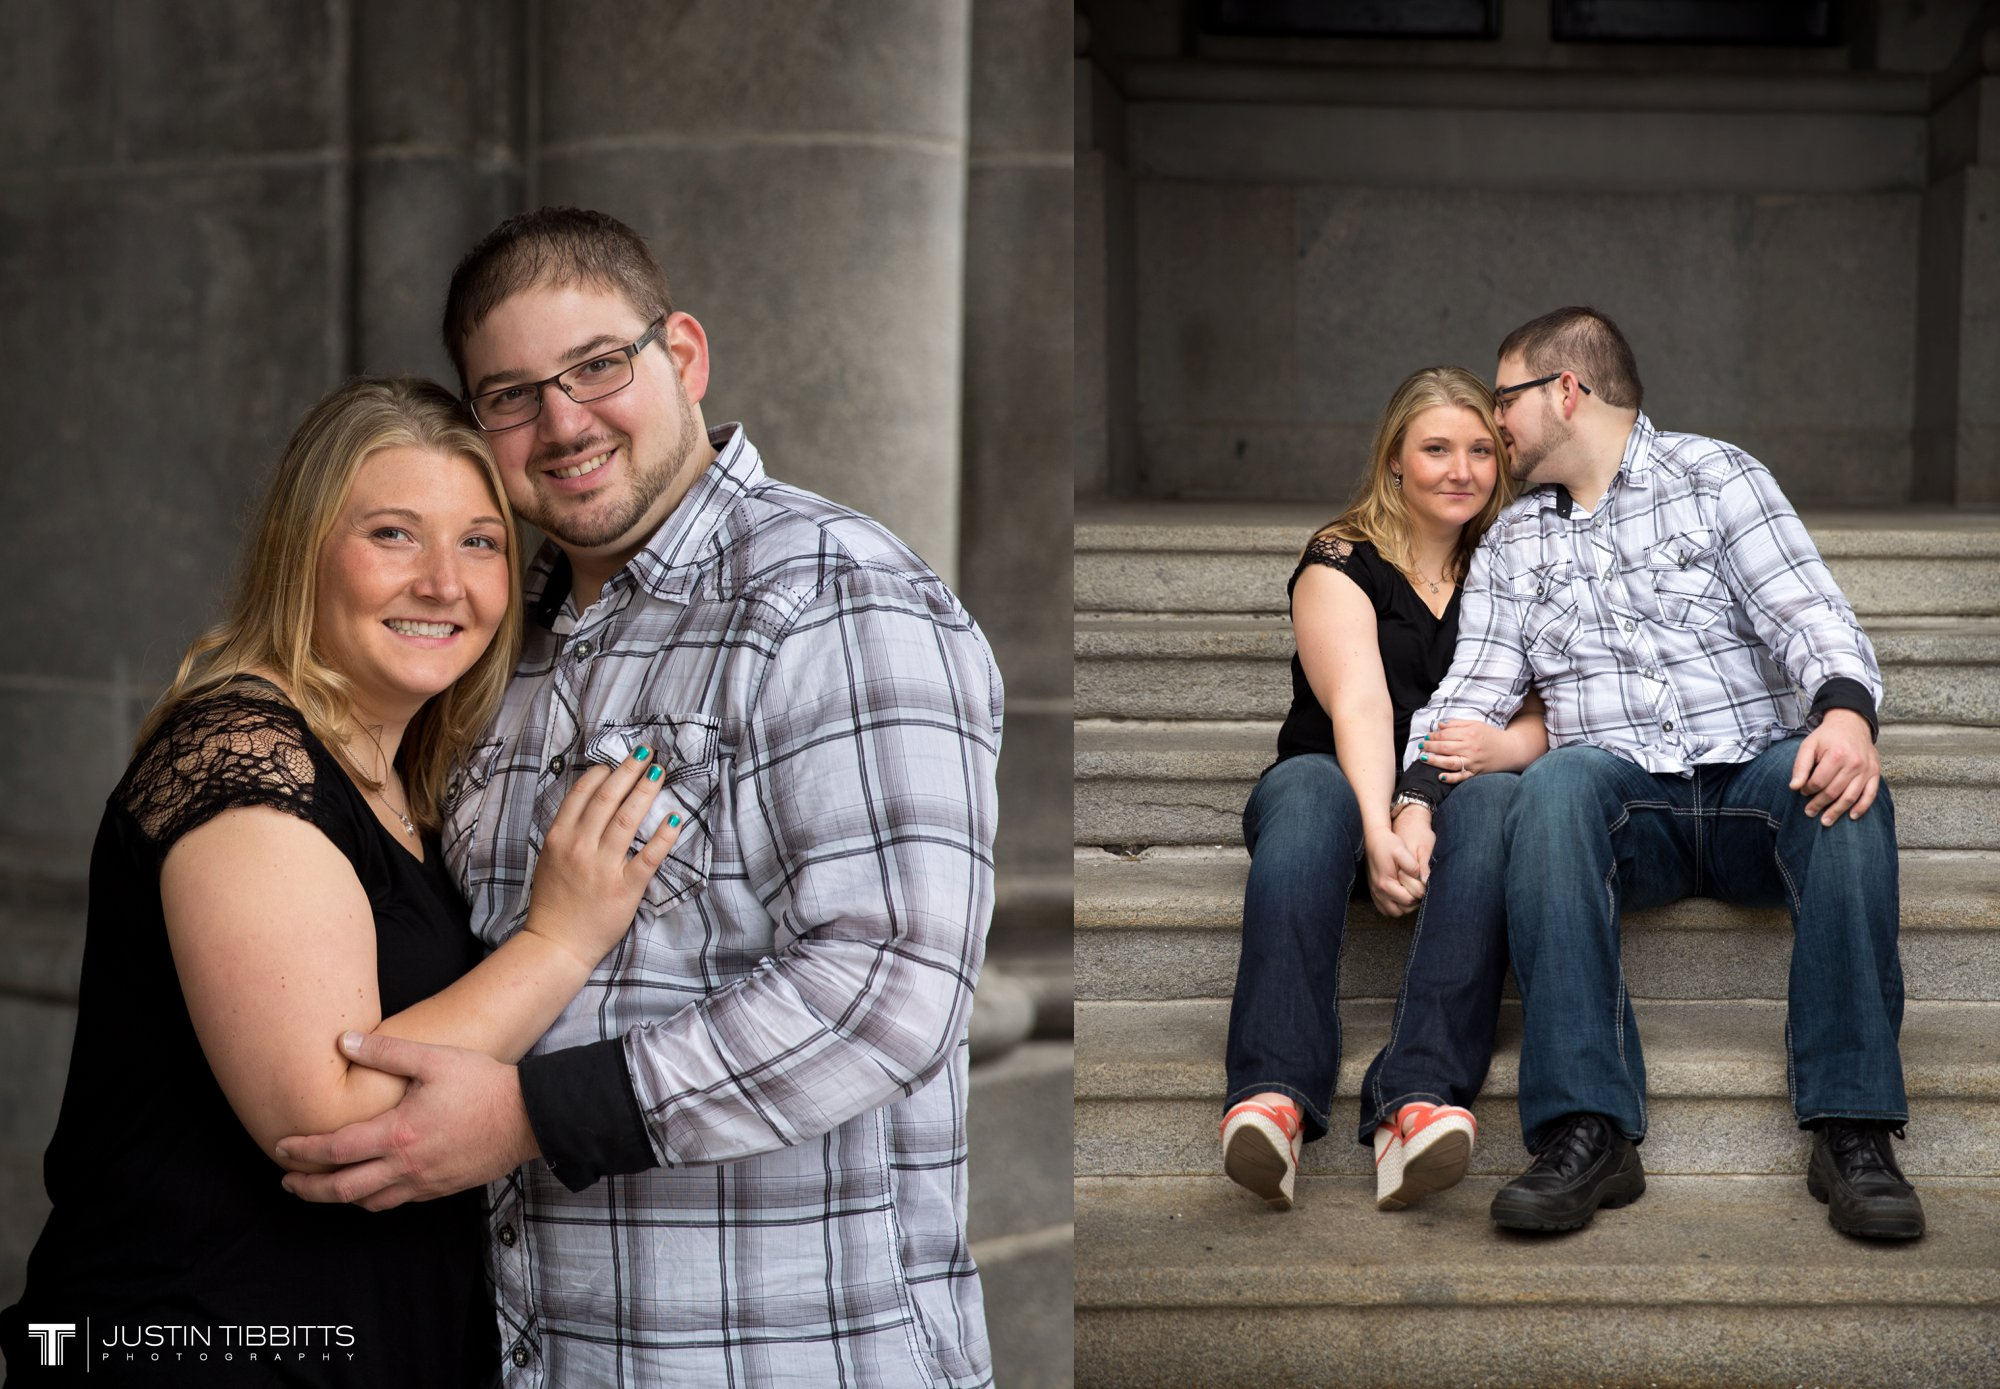 Justin Tibbitts Photography Jessica and Steve H E-shoot-27